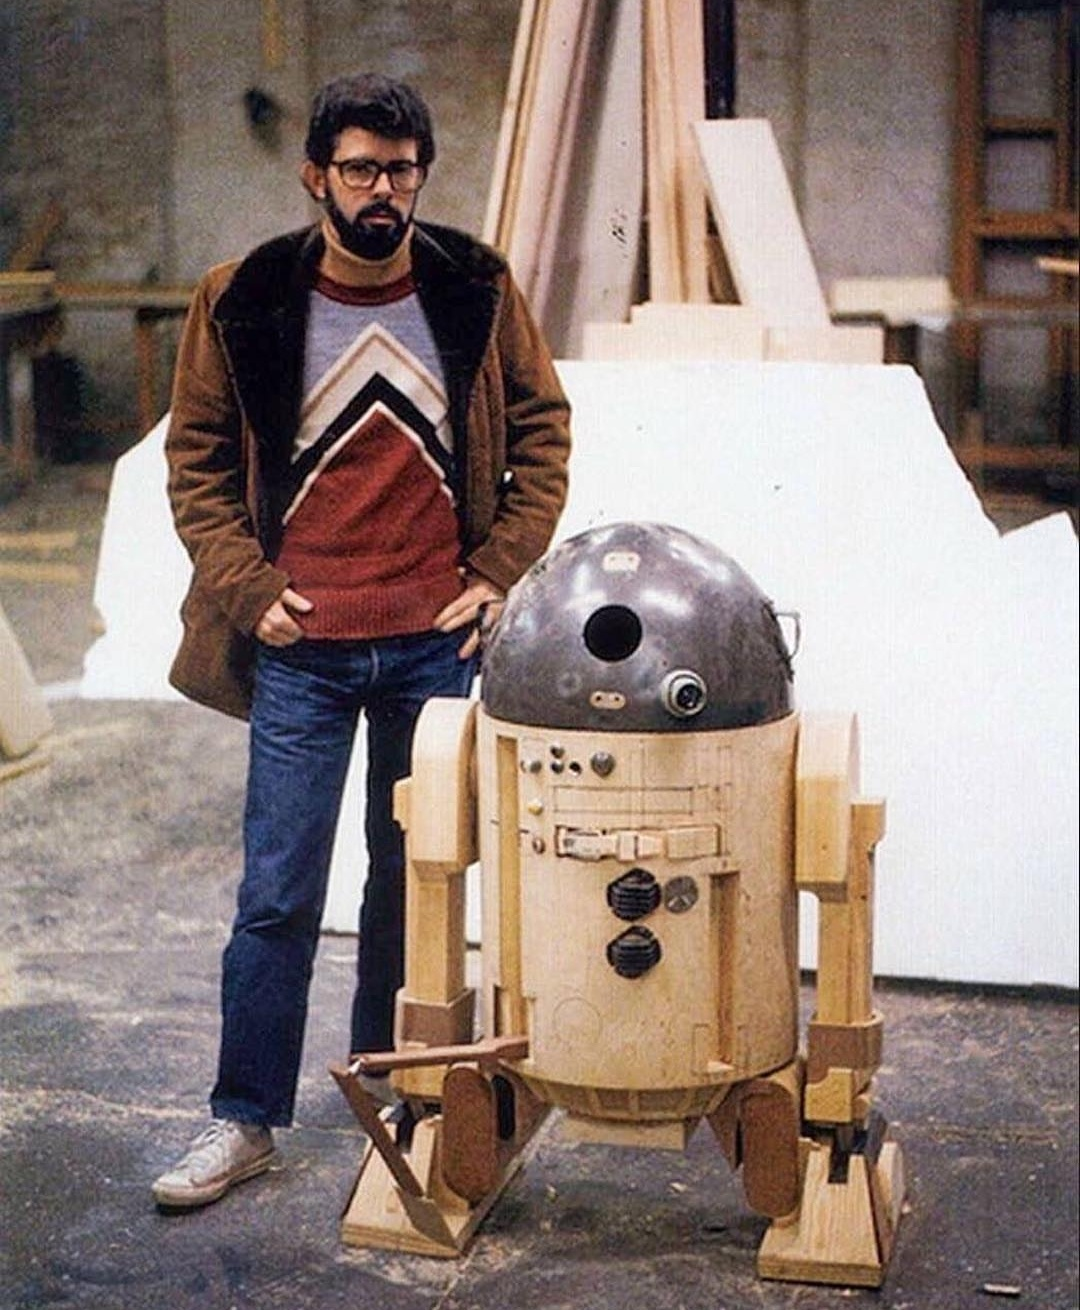 George Lucas with concept R2D2